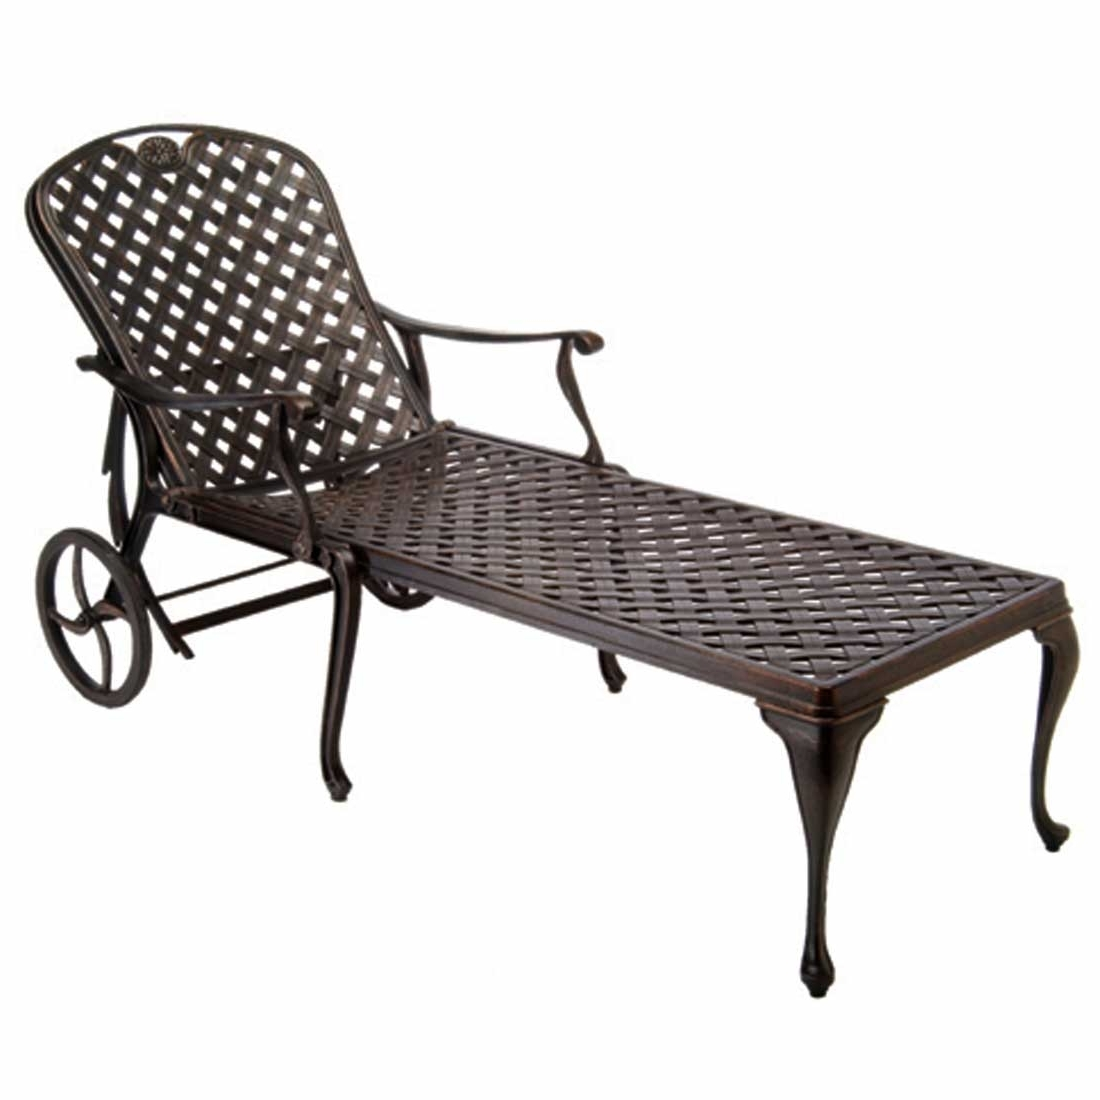 Latest Wrought Iron Chaise Lounges Within Provance Metal Chaise Lounge Chairs (View 15 of 15)